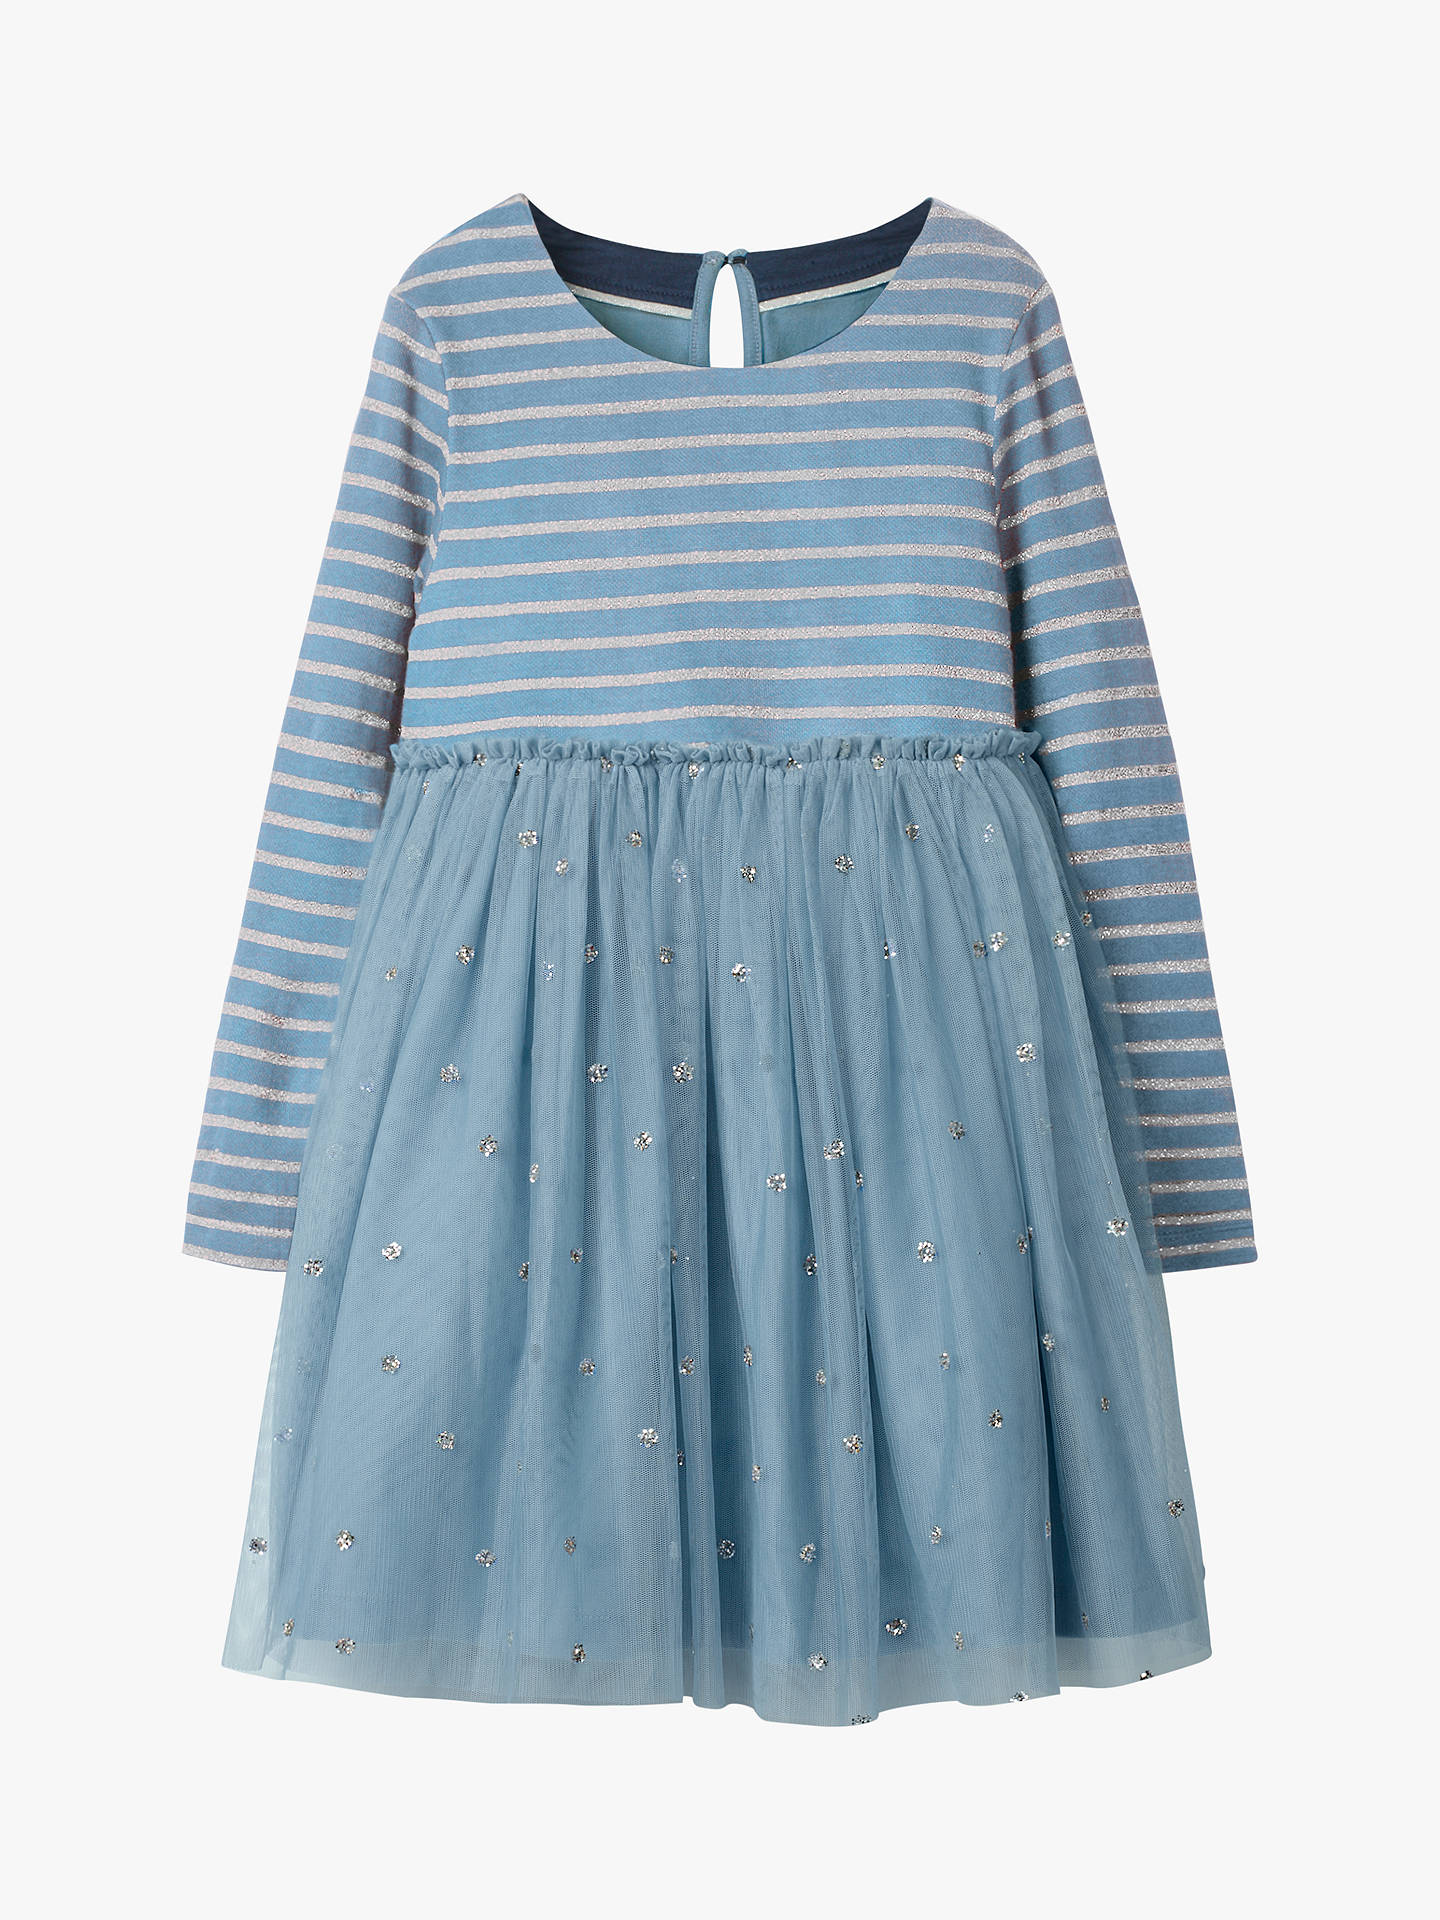 Kids' Clothes, Shoes & Accs. Mini Boden Dress 7-8